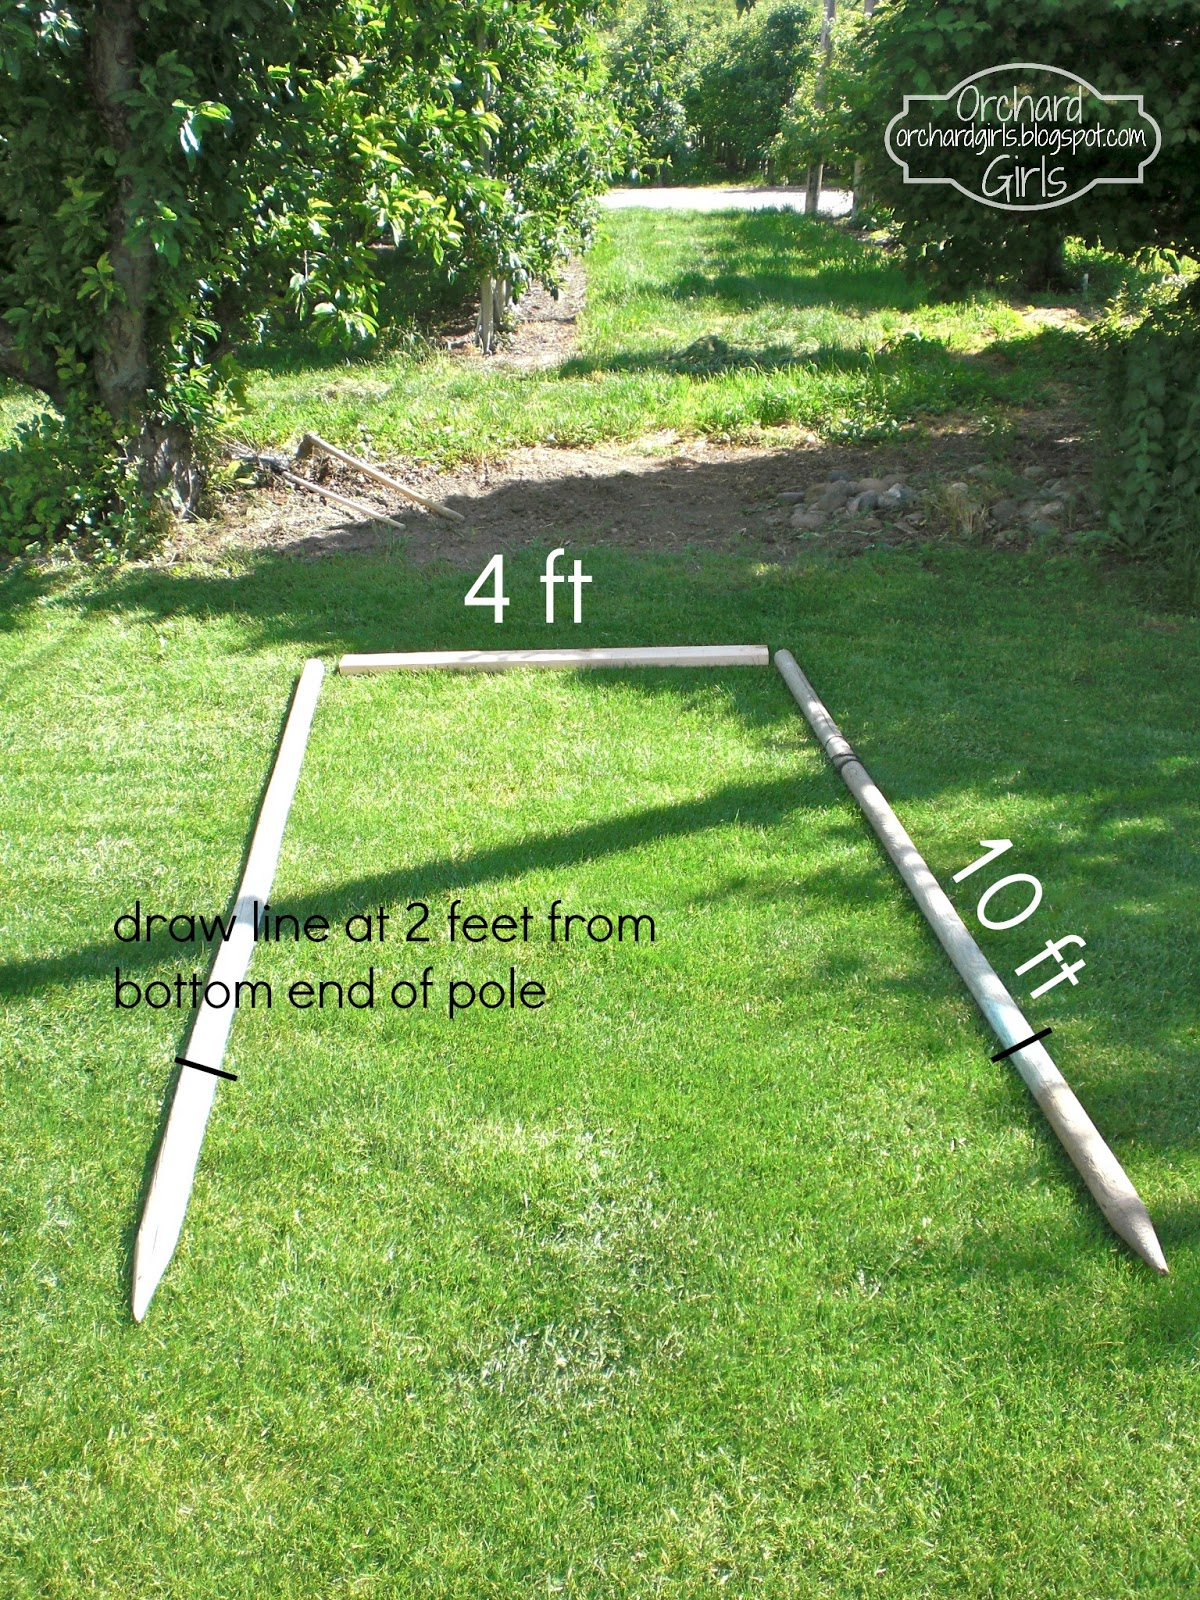 Orchard Girls: Build Your Own Trellis